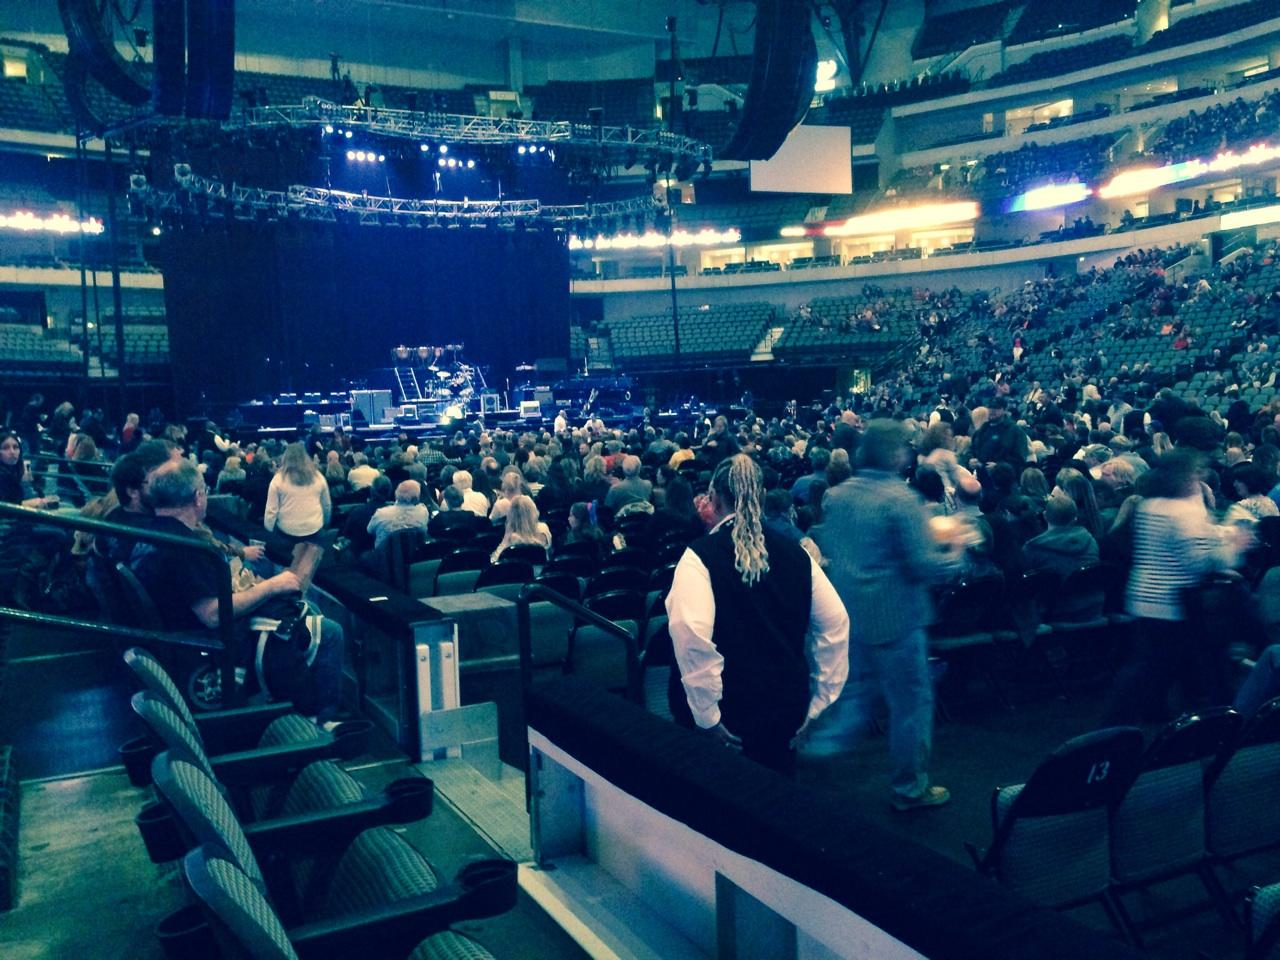 American Airlines Center Section 117 Concert Seating